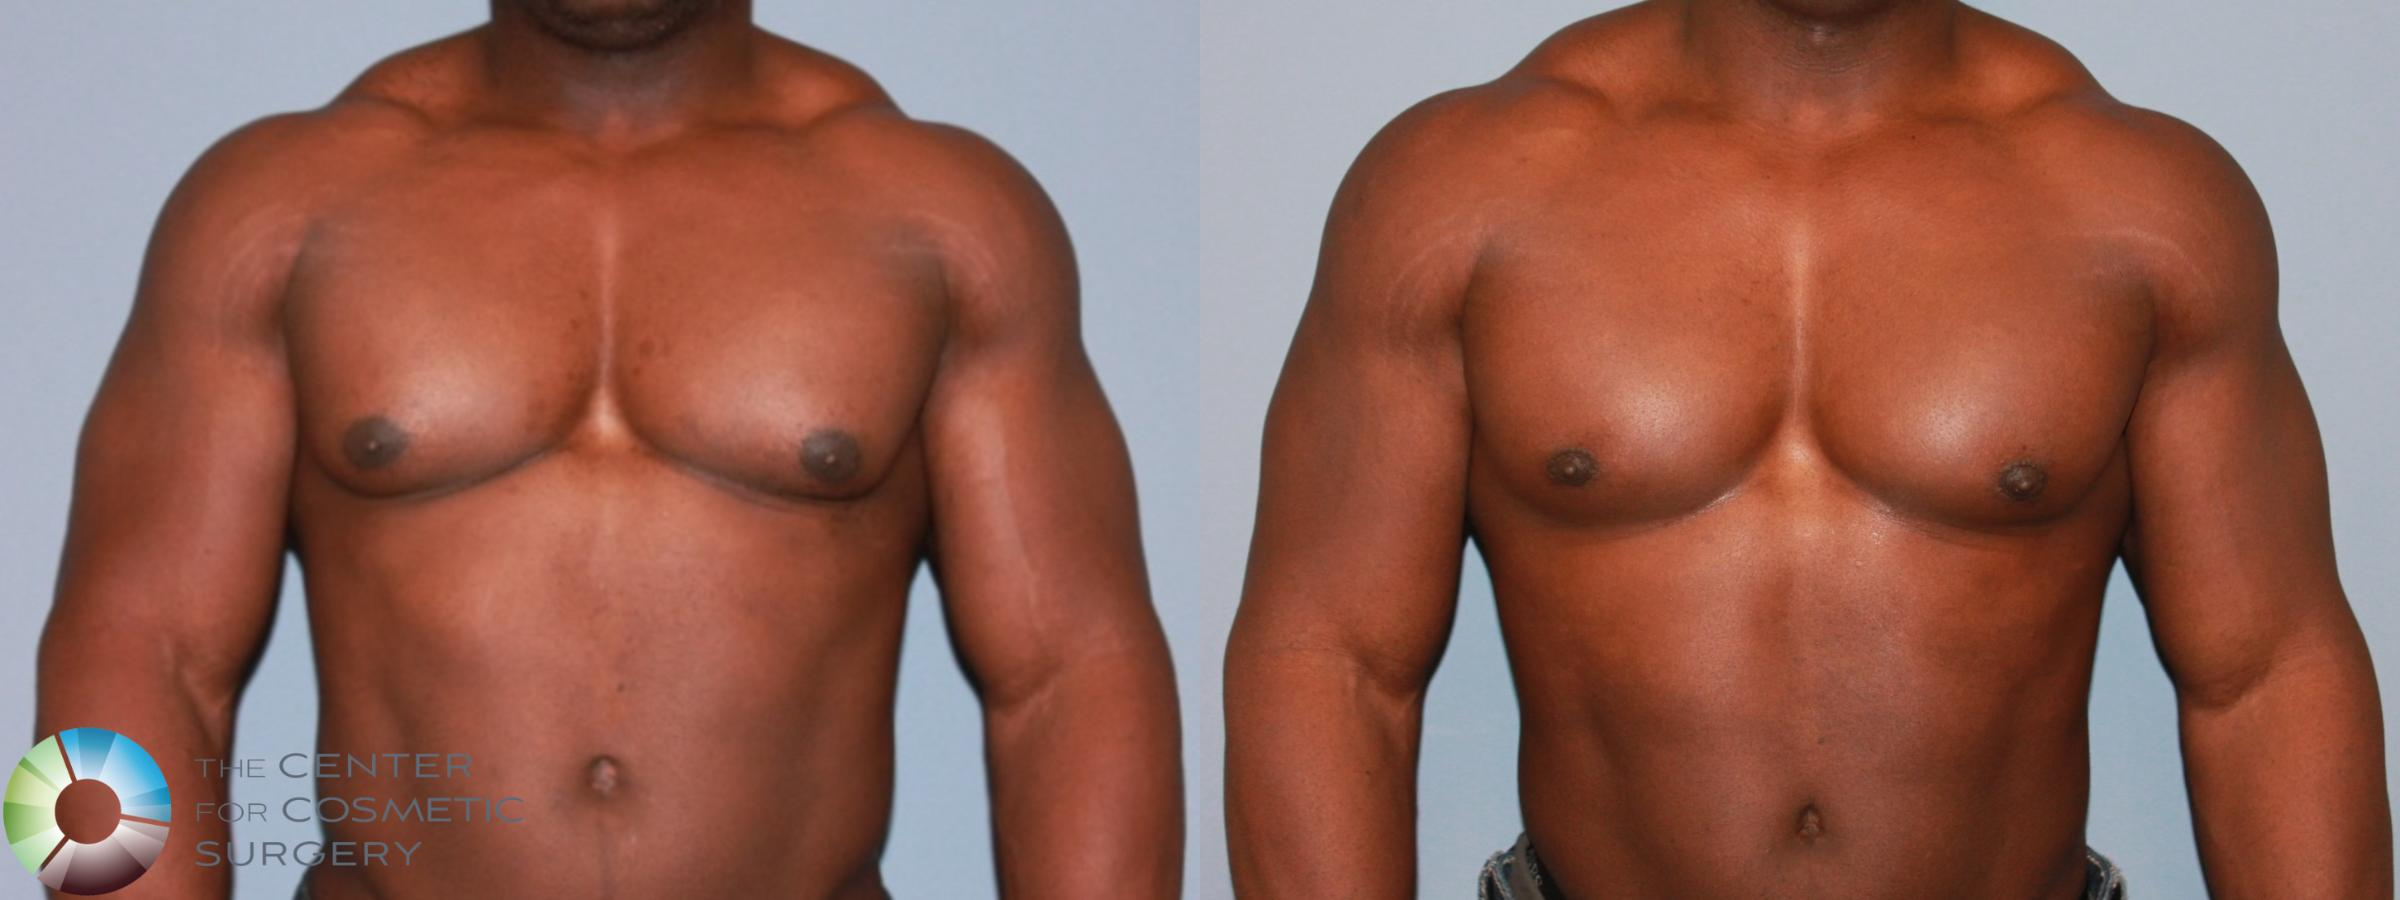 Male Breast Reduction (Gynecomastia) Case 477 Before & After View #1 | Golden, CO | The Center for Cosmetic Surgery